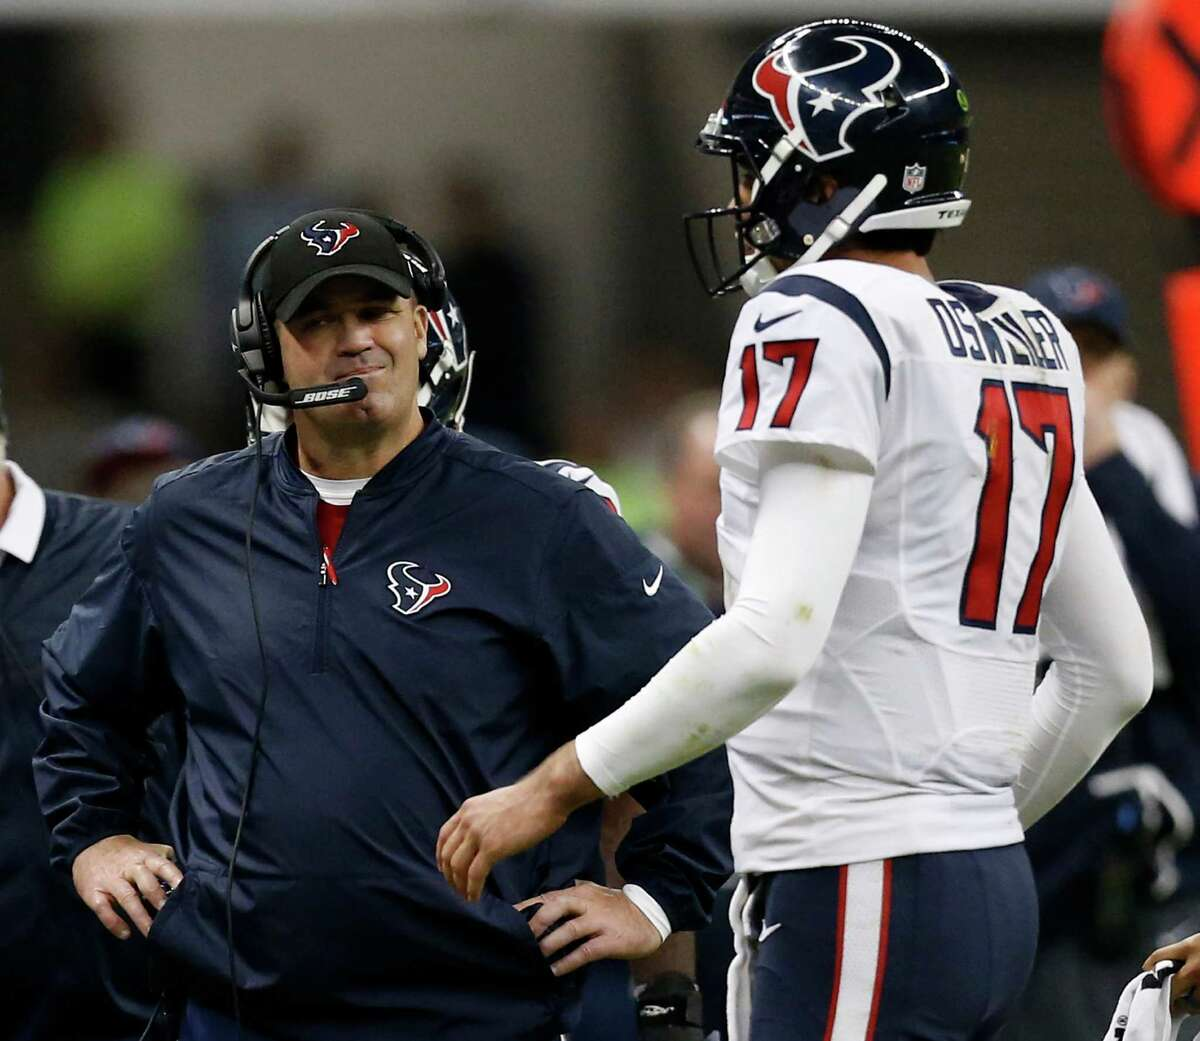 The threat of the Raiders' dynamic offense forced Texans coach Bill O'Brien, left, to be more aggressive with the Brock Osweiler-led offense in the fourth quarter.